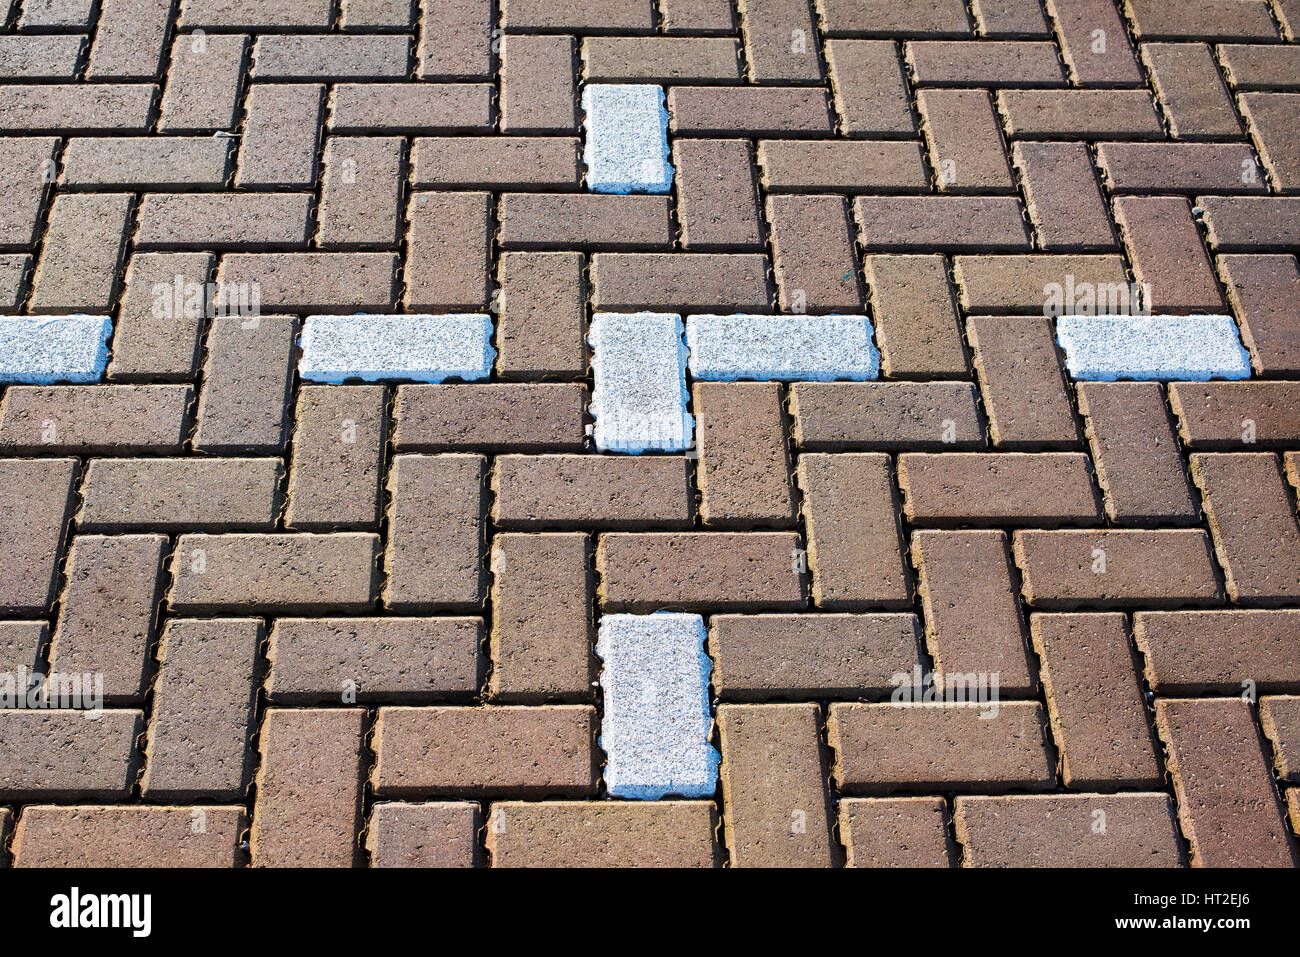 Abstract herringbone block paving in a car park pattern Stock Photo